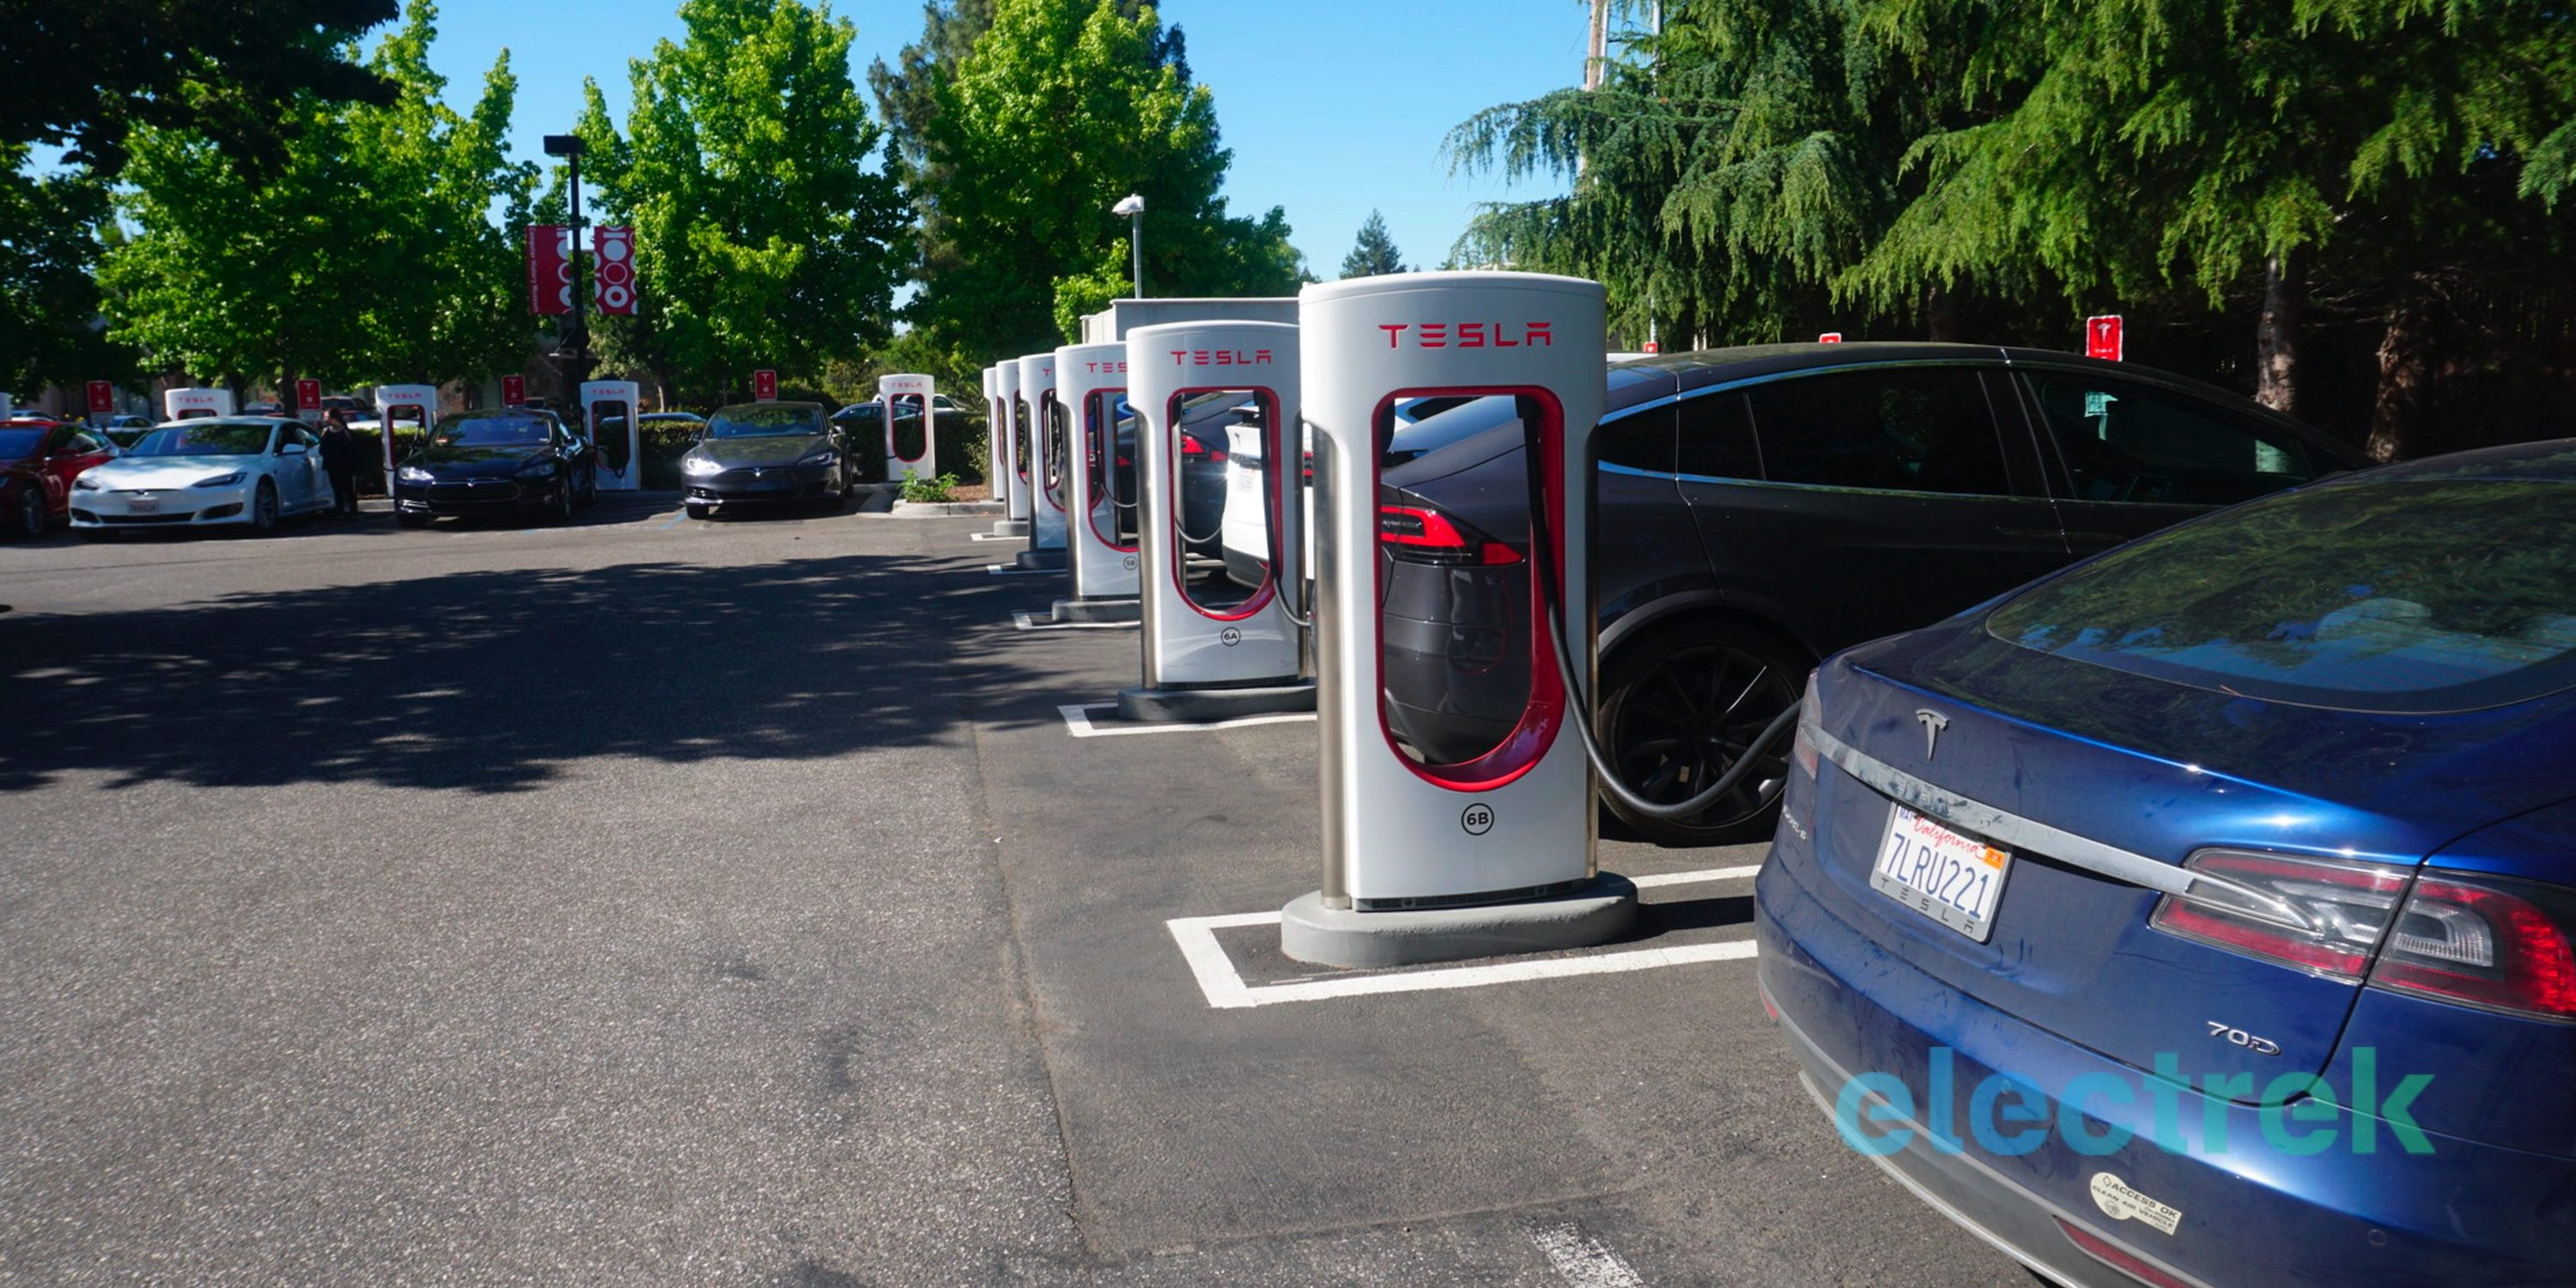 Tesla starts limiting charge to 80% at busy Superchargers to reduce wait times